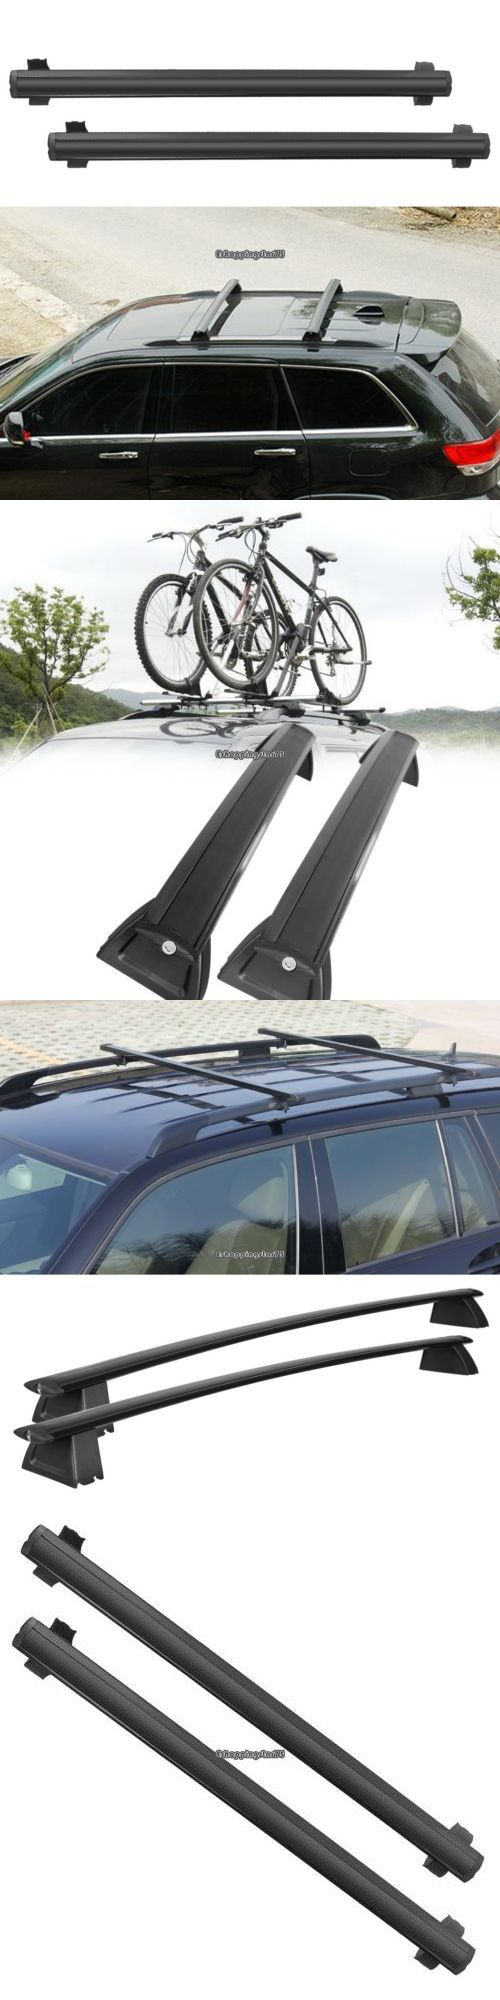 Other Kayak Canoe and Rafting 36123: Adjustable Car Top Aluminum Cross Bar Roof Cargo Luggage Rack Eh7e01 -> BUY IT NOW ONLY: $113.79 on eBay!